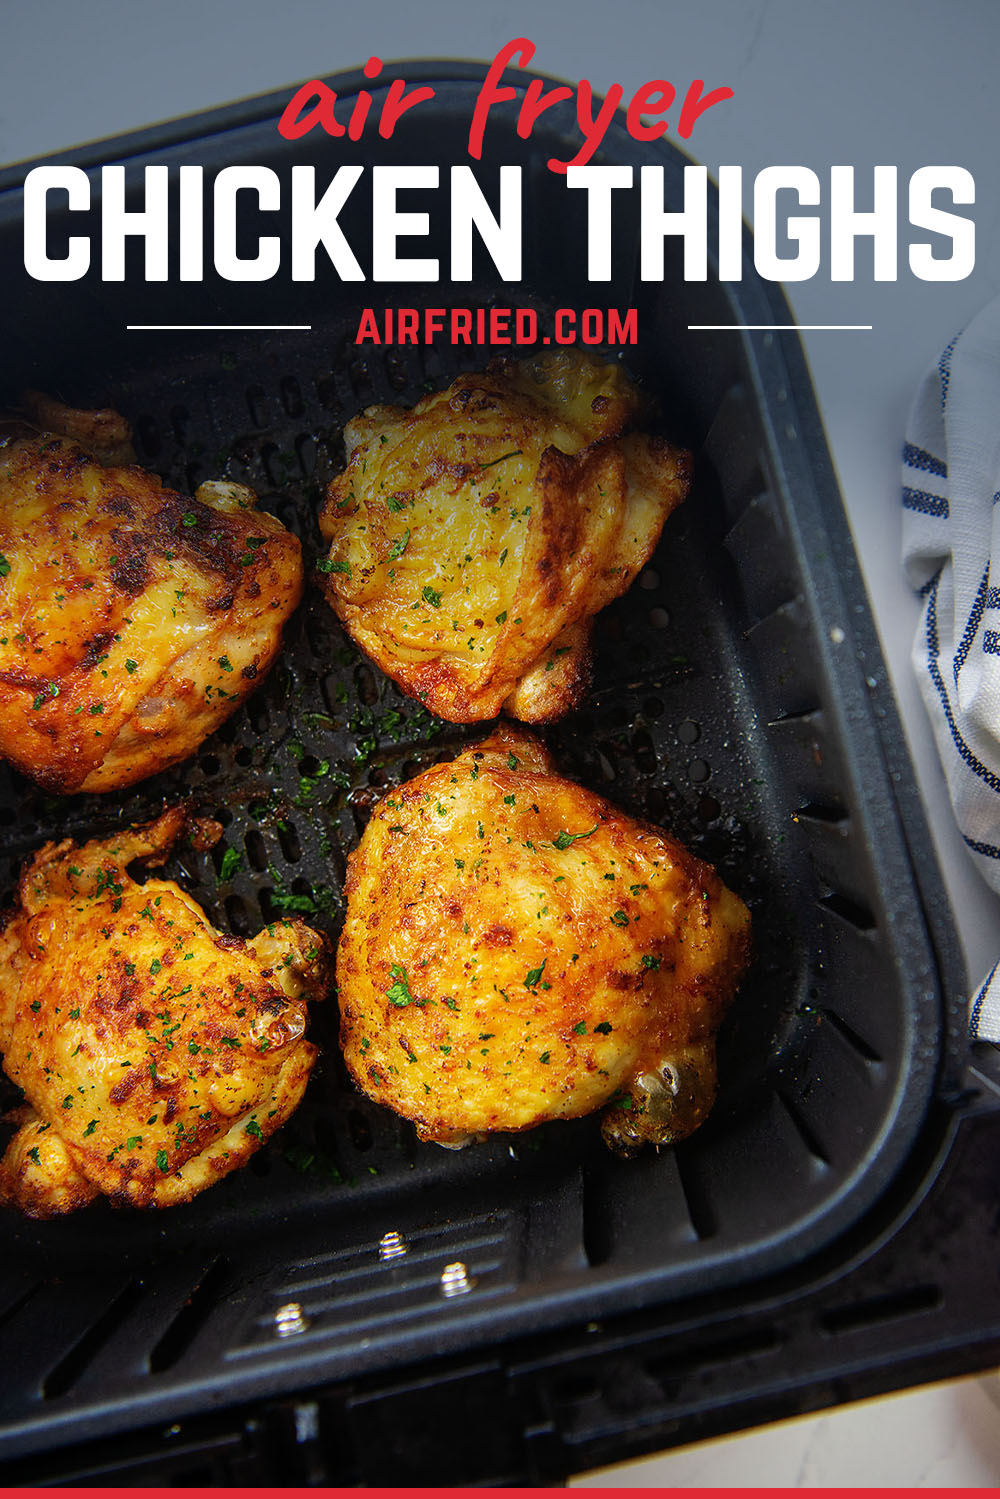 Overhead view of four chicken thighs in an air fryer.